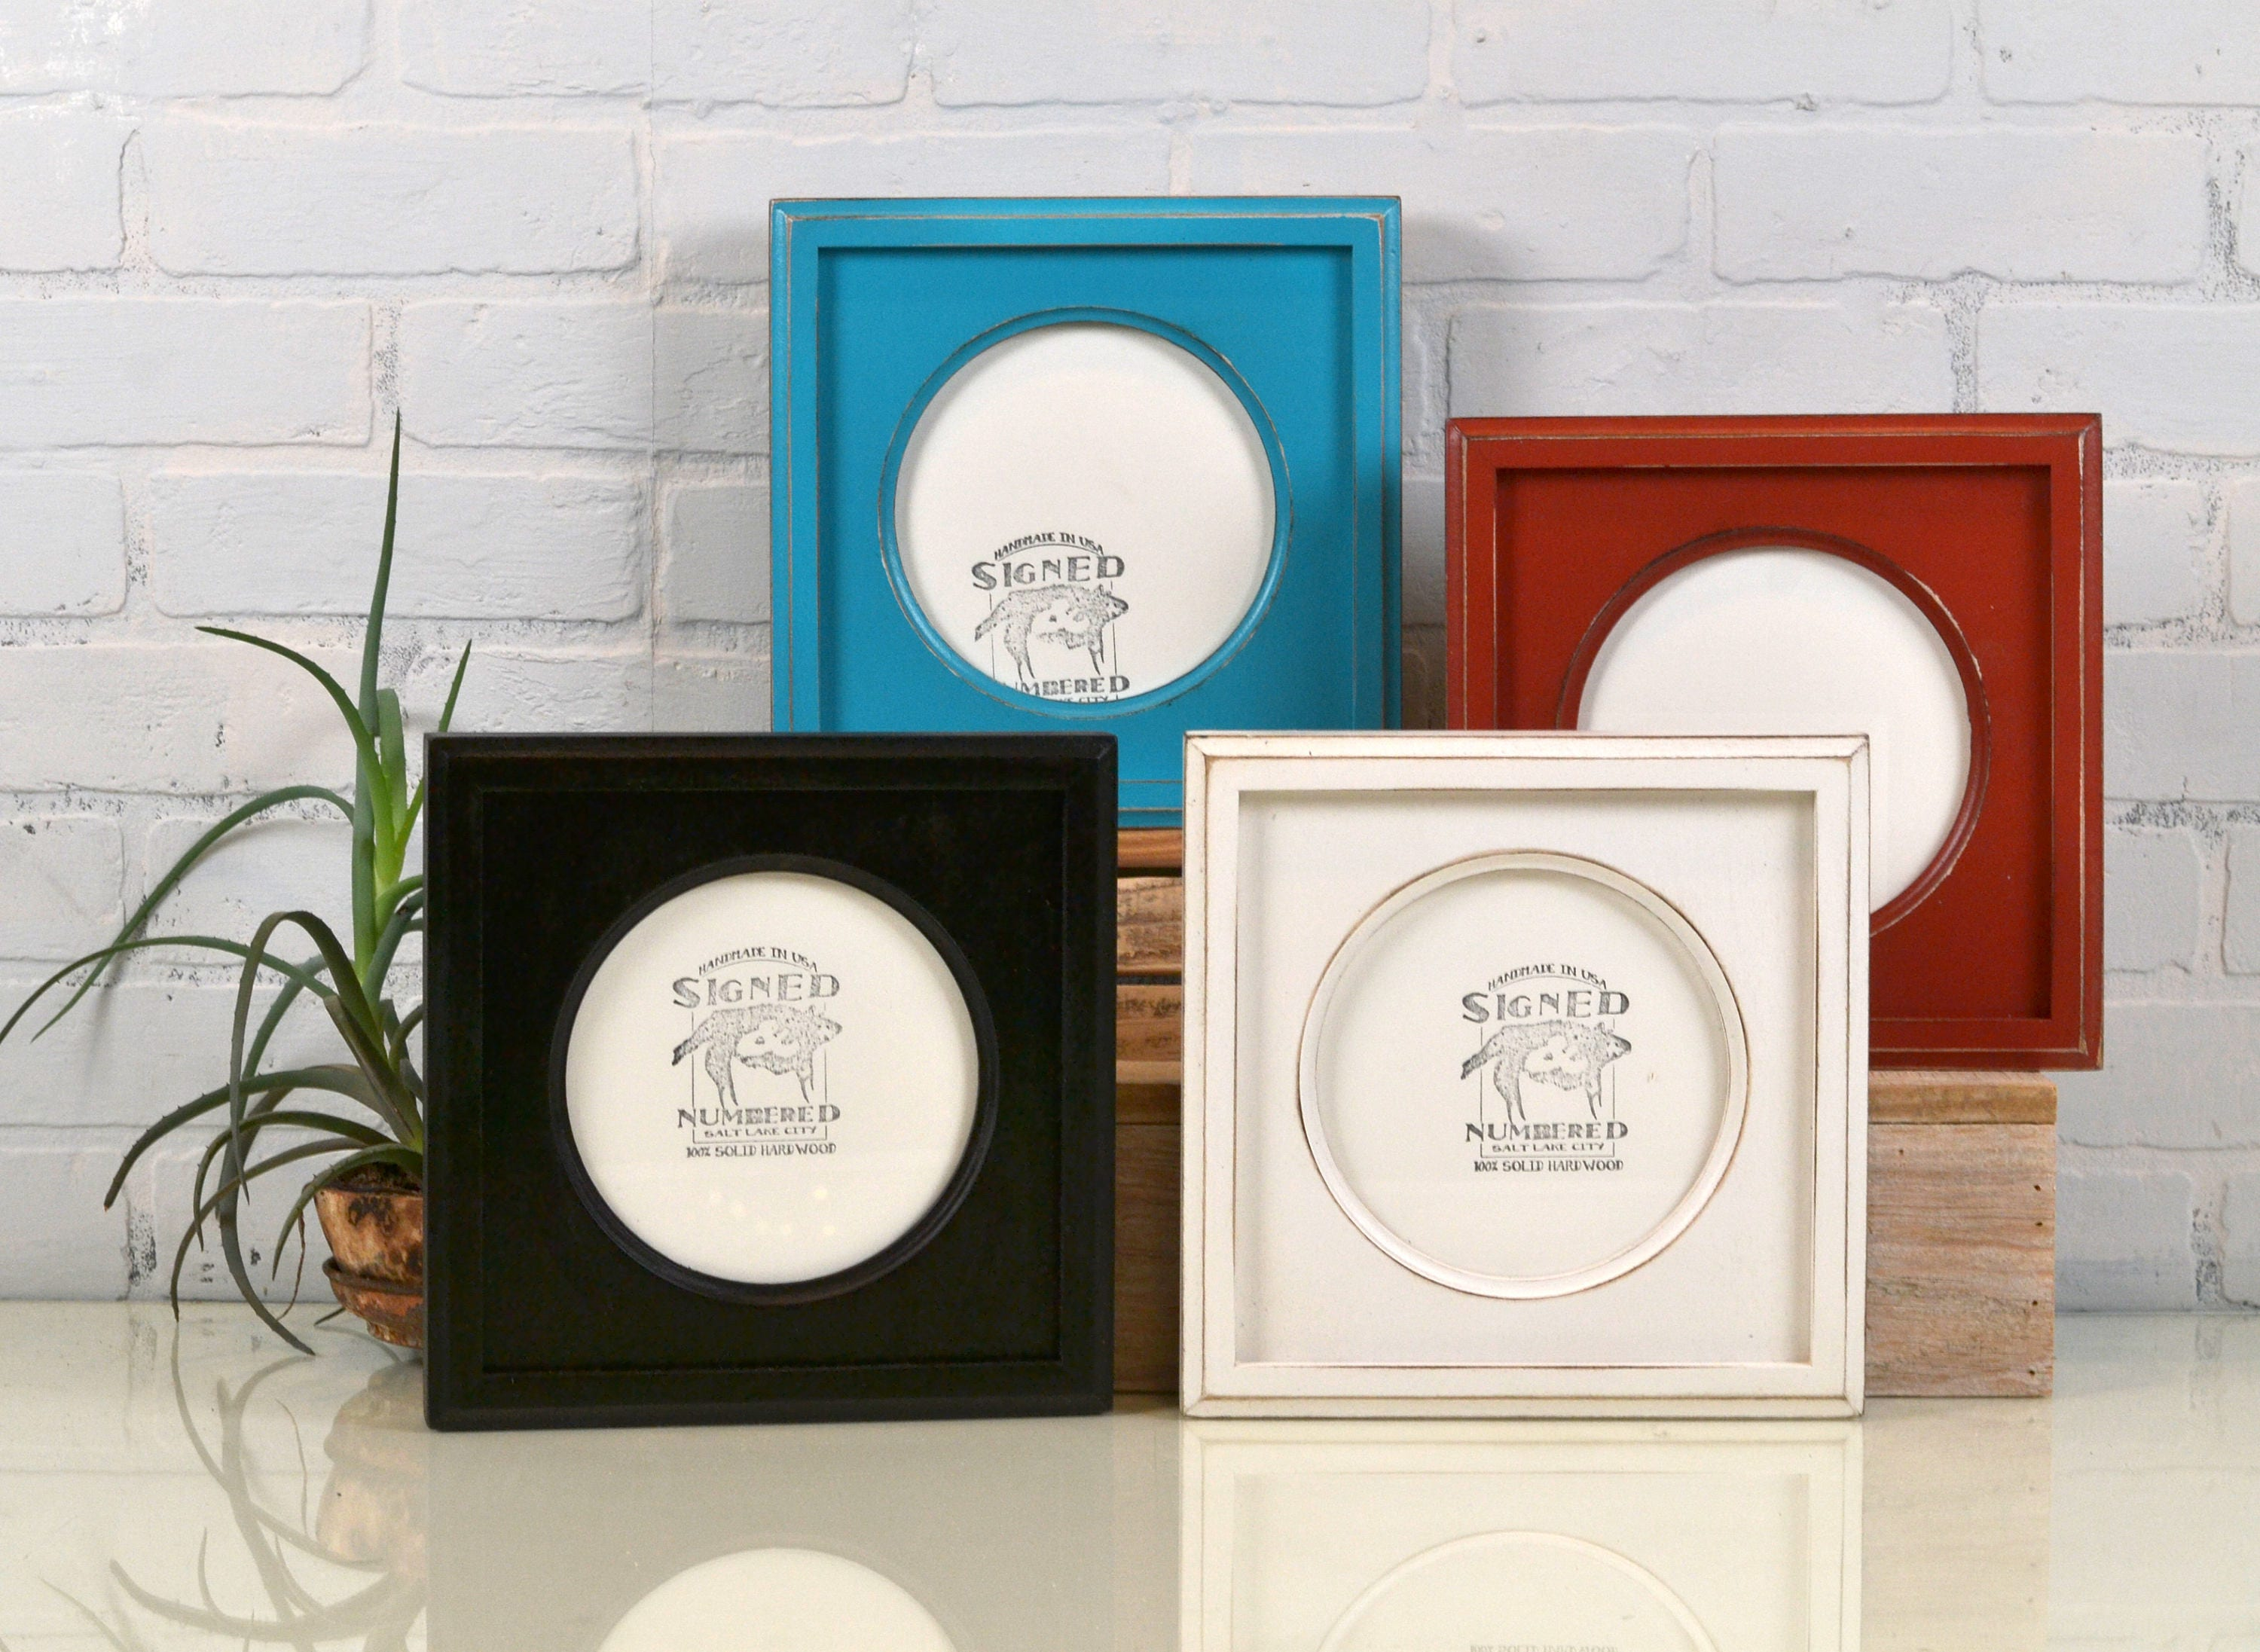 6x6 Picture Frame With Circle Opening For Square Photo Can Be Any